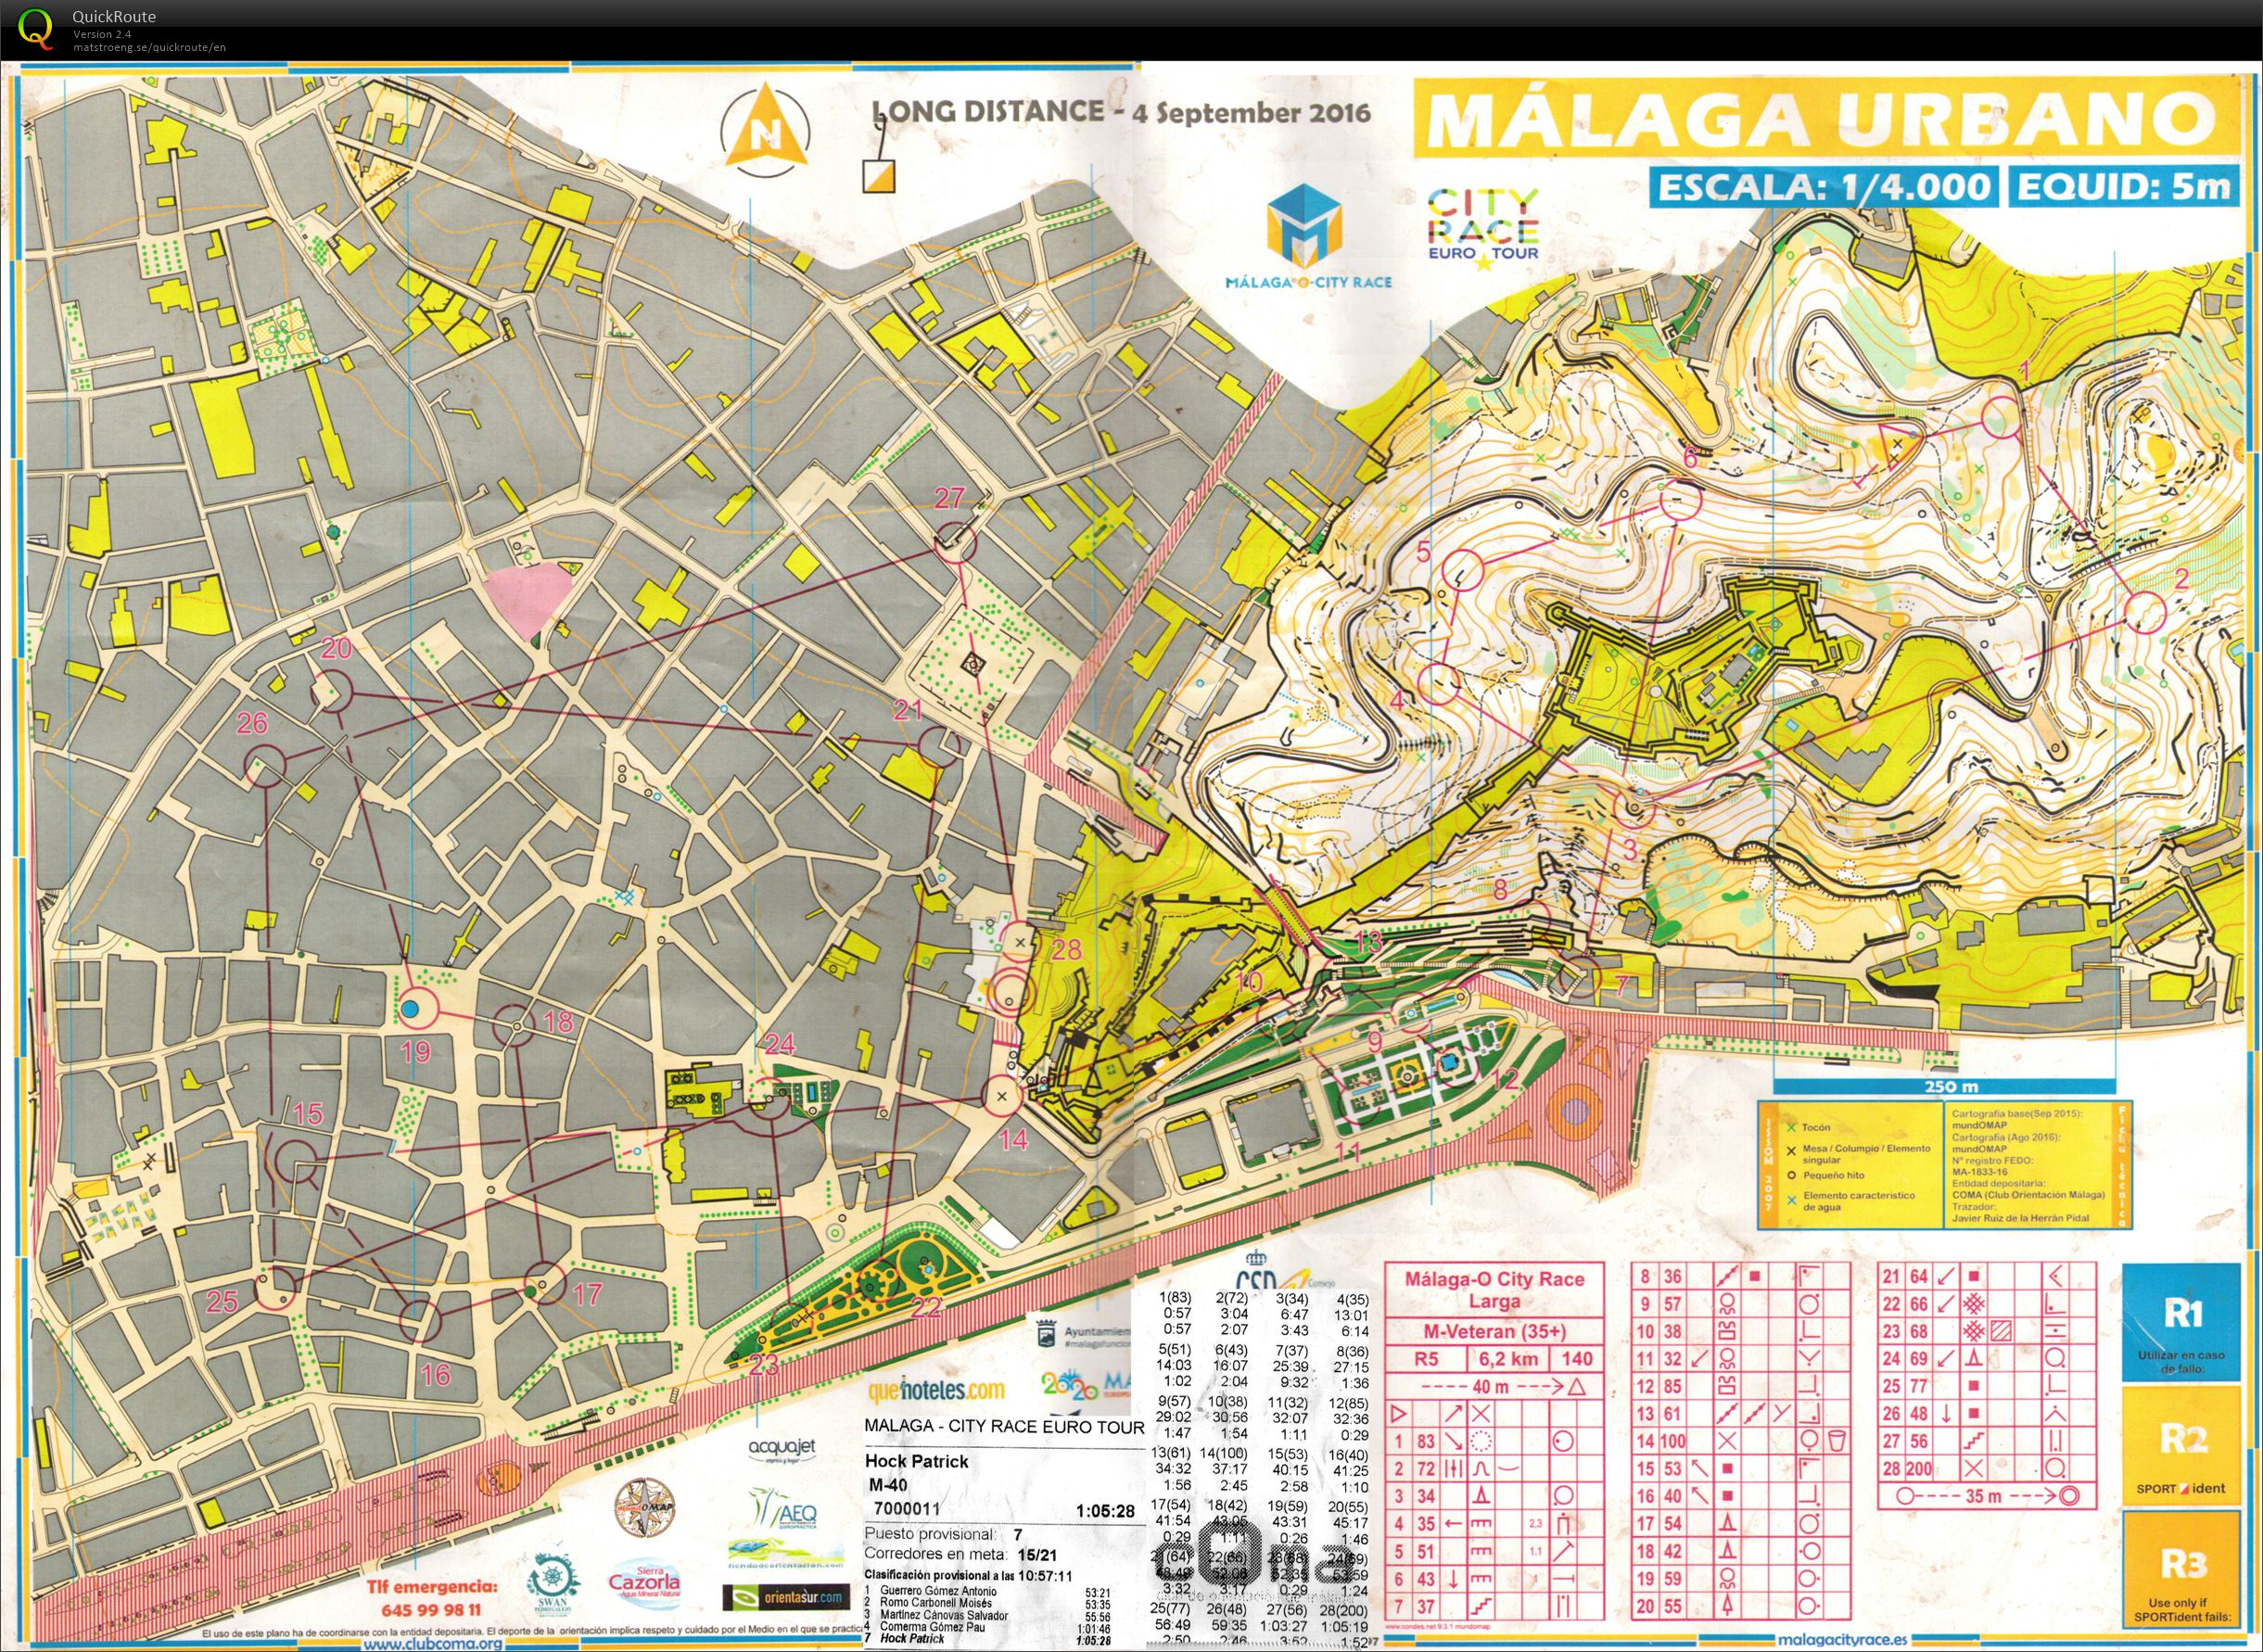 malaga city race  old route e  may rd   orienteering map  - view map without route »